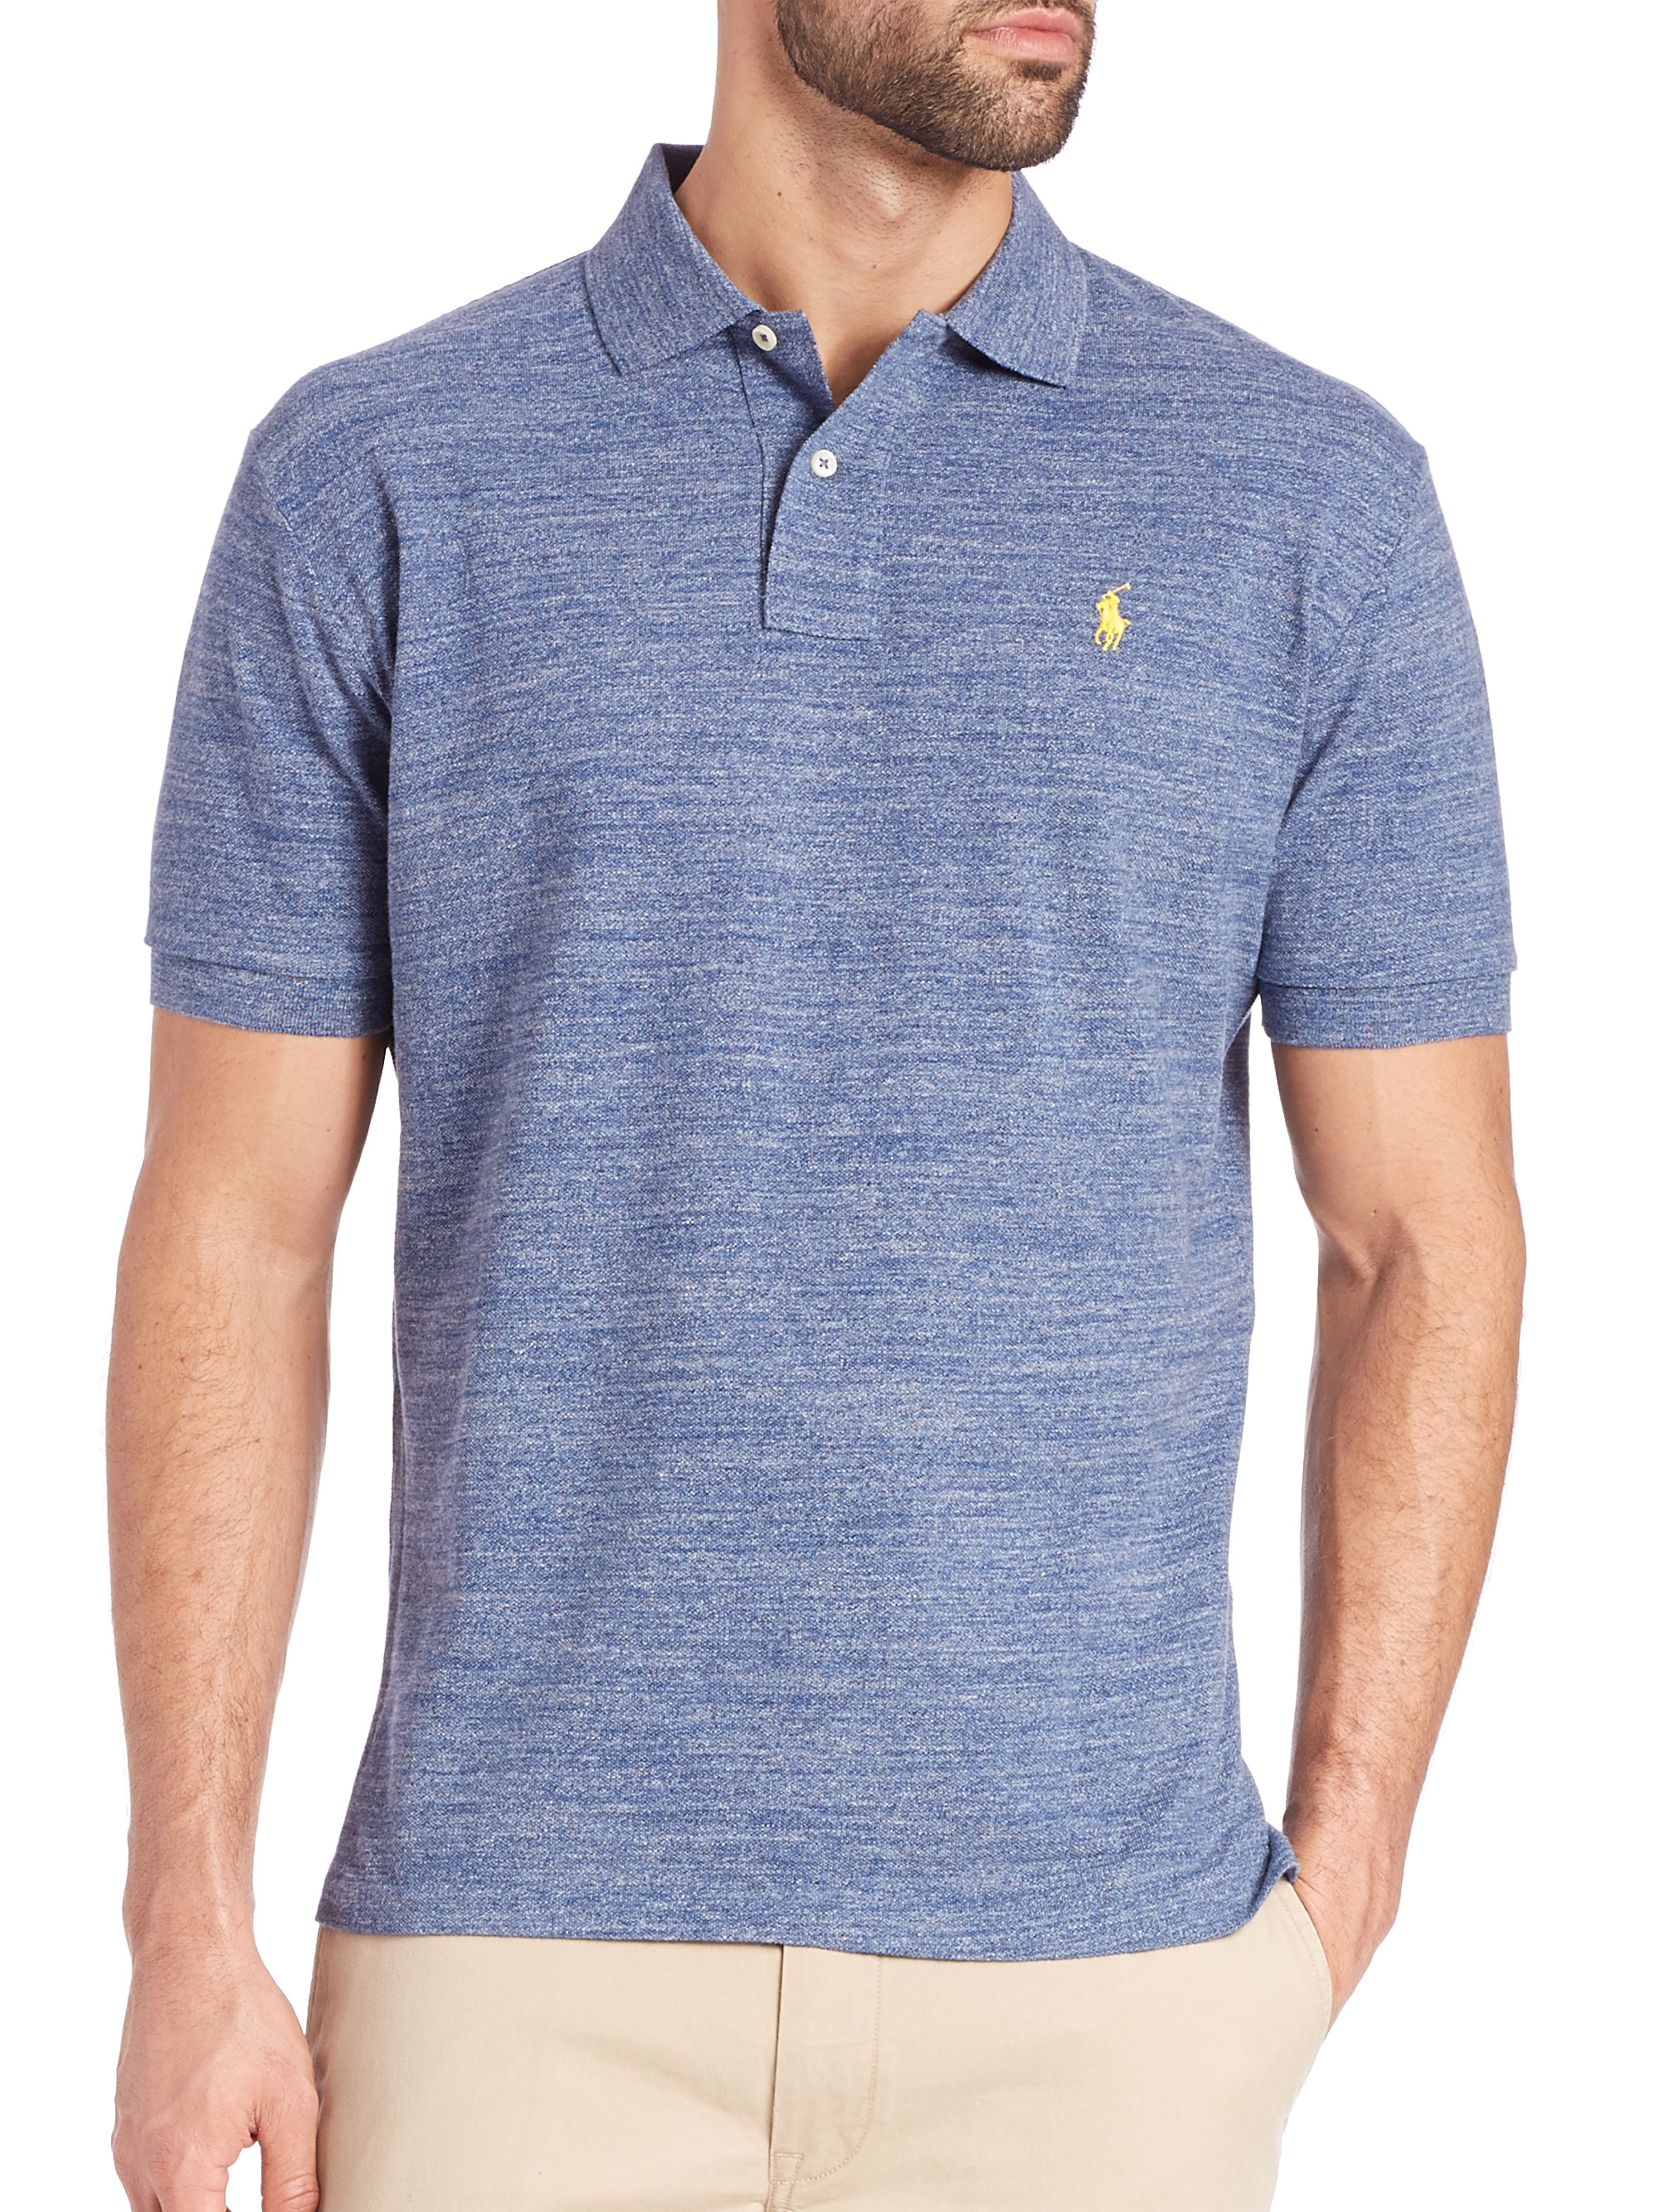 Lyst - Polo Ralph Lauren Heathered Polo Shirt in Blue for Men